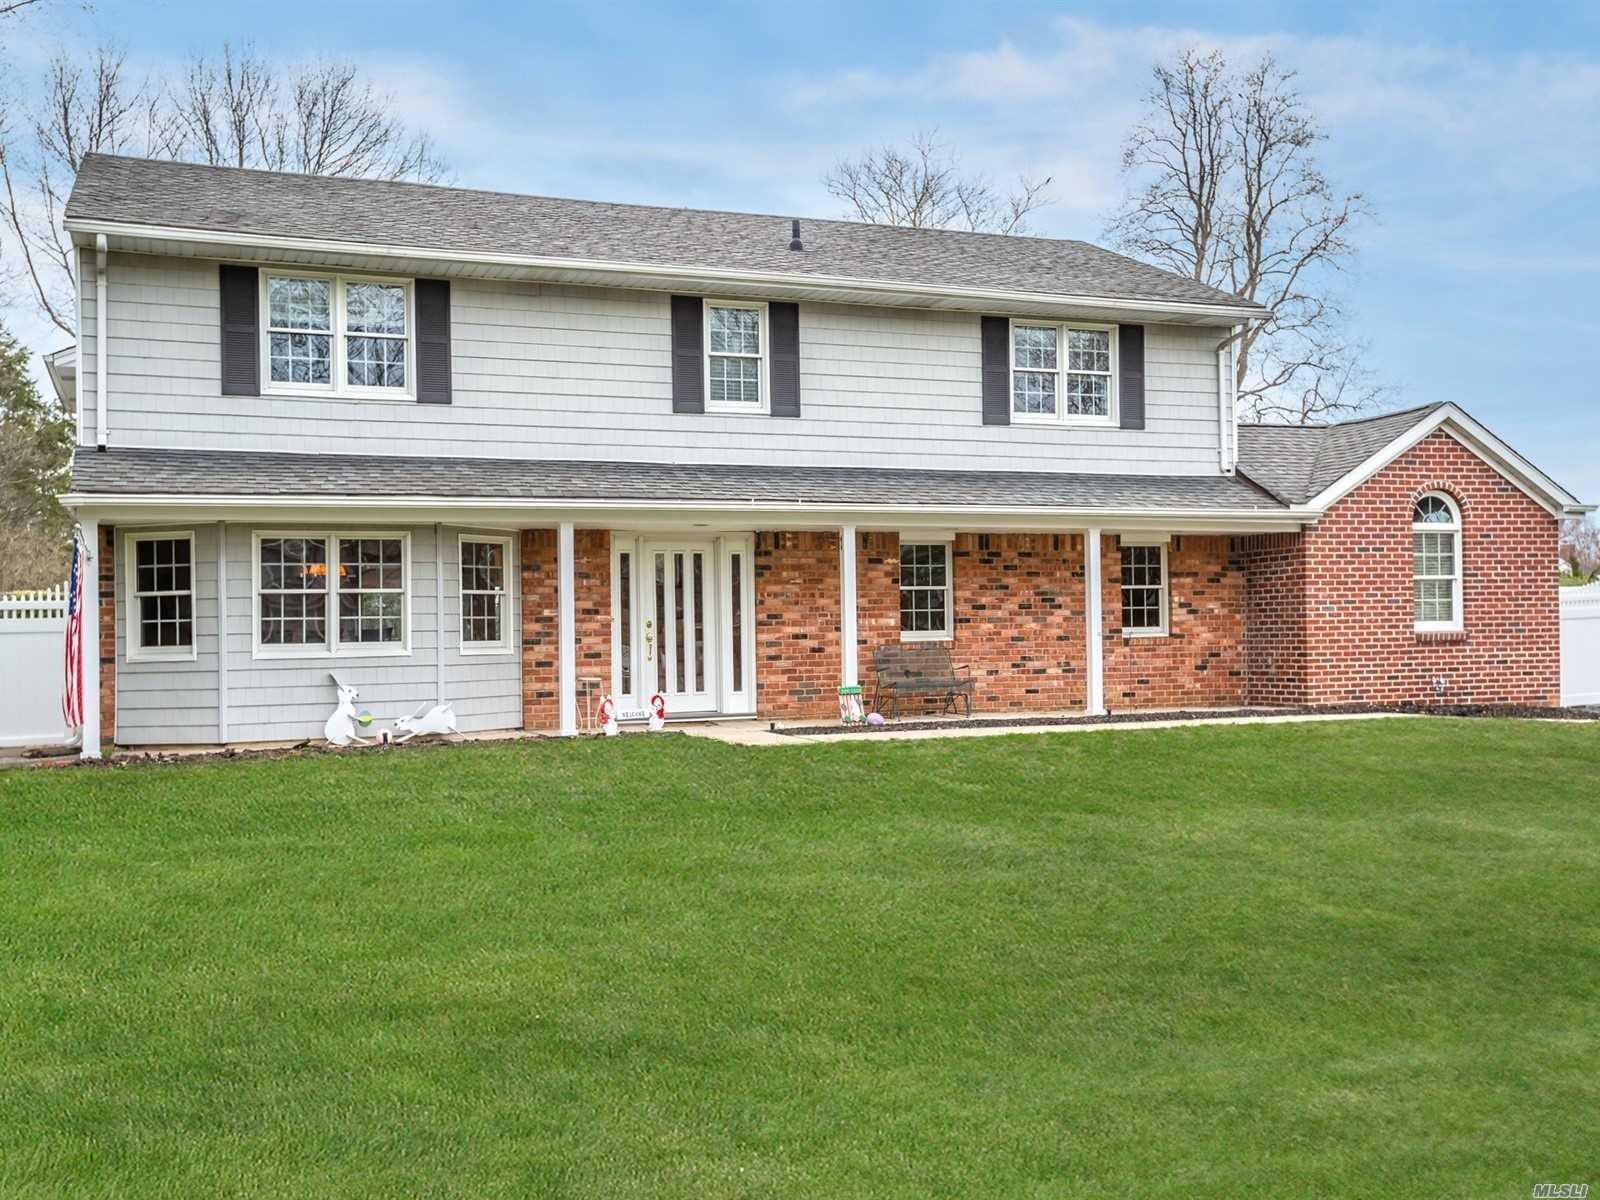 Fabulous, Updated Expanded Splanch in desirable Commack SD#10! 6 Bedrooms & 3.5 Baths! This large home features a bright, open floor plan, Formal Living w/soaring ceiling, Formal Dining Rm. Updated E-I Kitchen w/centre Island, Granite ctrs, SS Appls. 1st floor Guest Suite, Bedroom, Great Rm w/soaring ceiling, Full Bath. Possible room for Mom. Radiant heat floors thru-out first floor. 2nd flr Master Bedroom Suite plus 4 addl bedrooms. Updates include windows, siding, electric, plus much more!